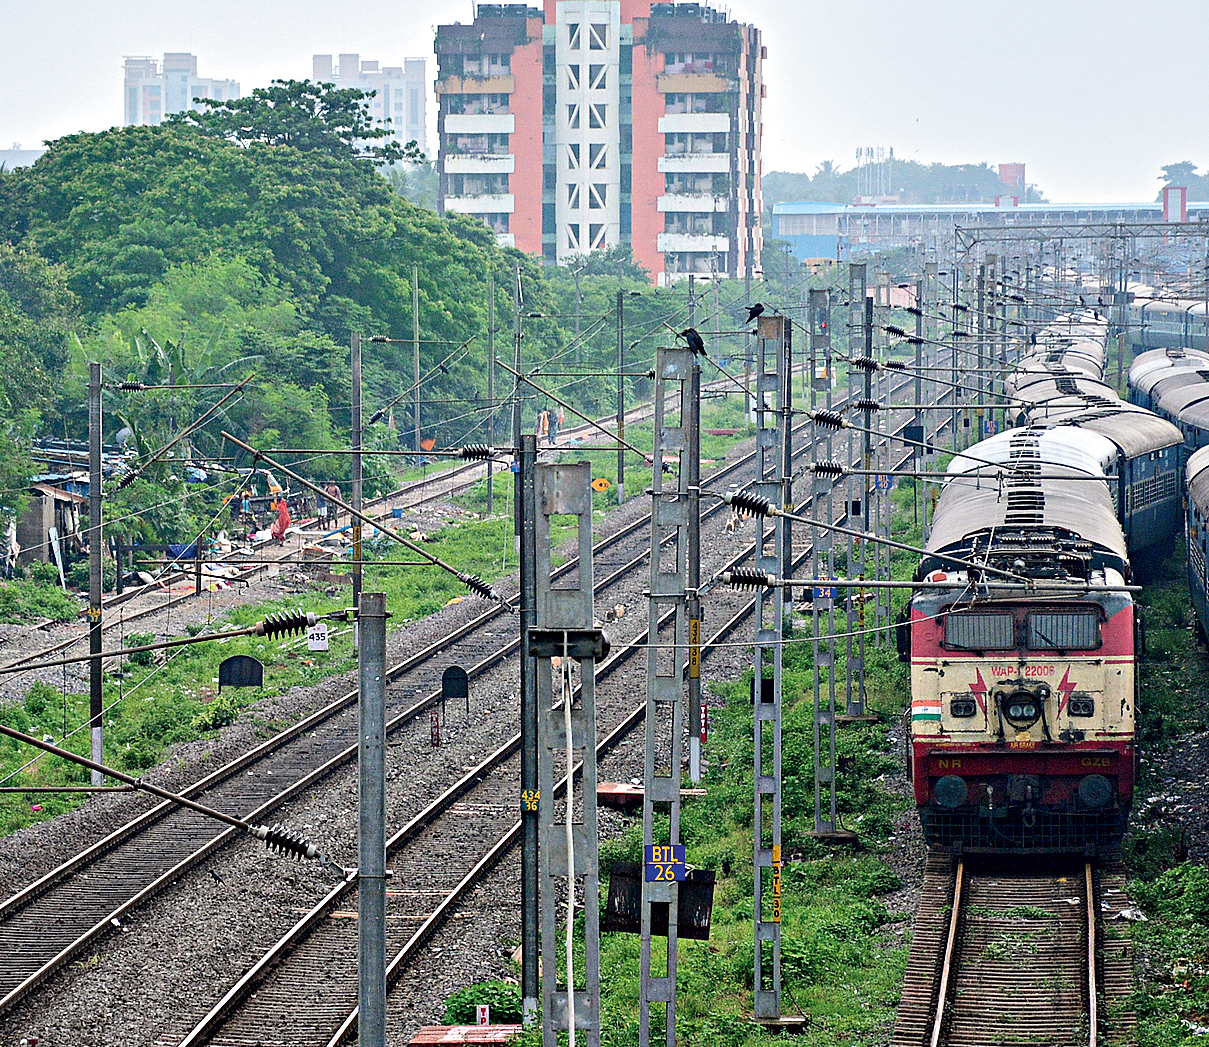 Railway tracks are often used for open-defecation.